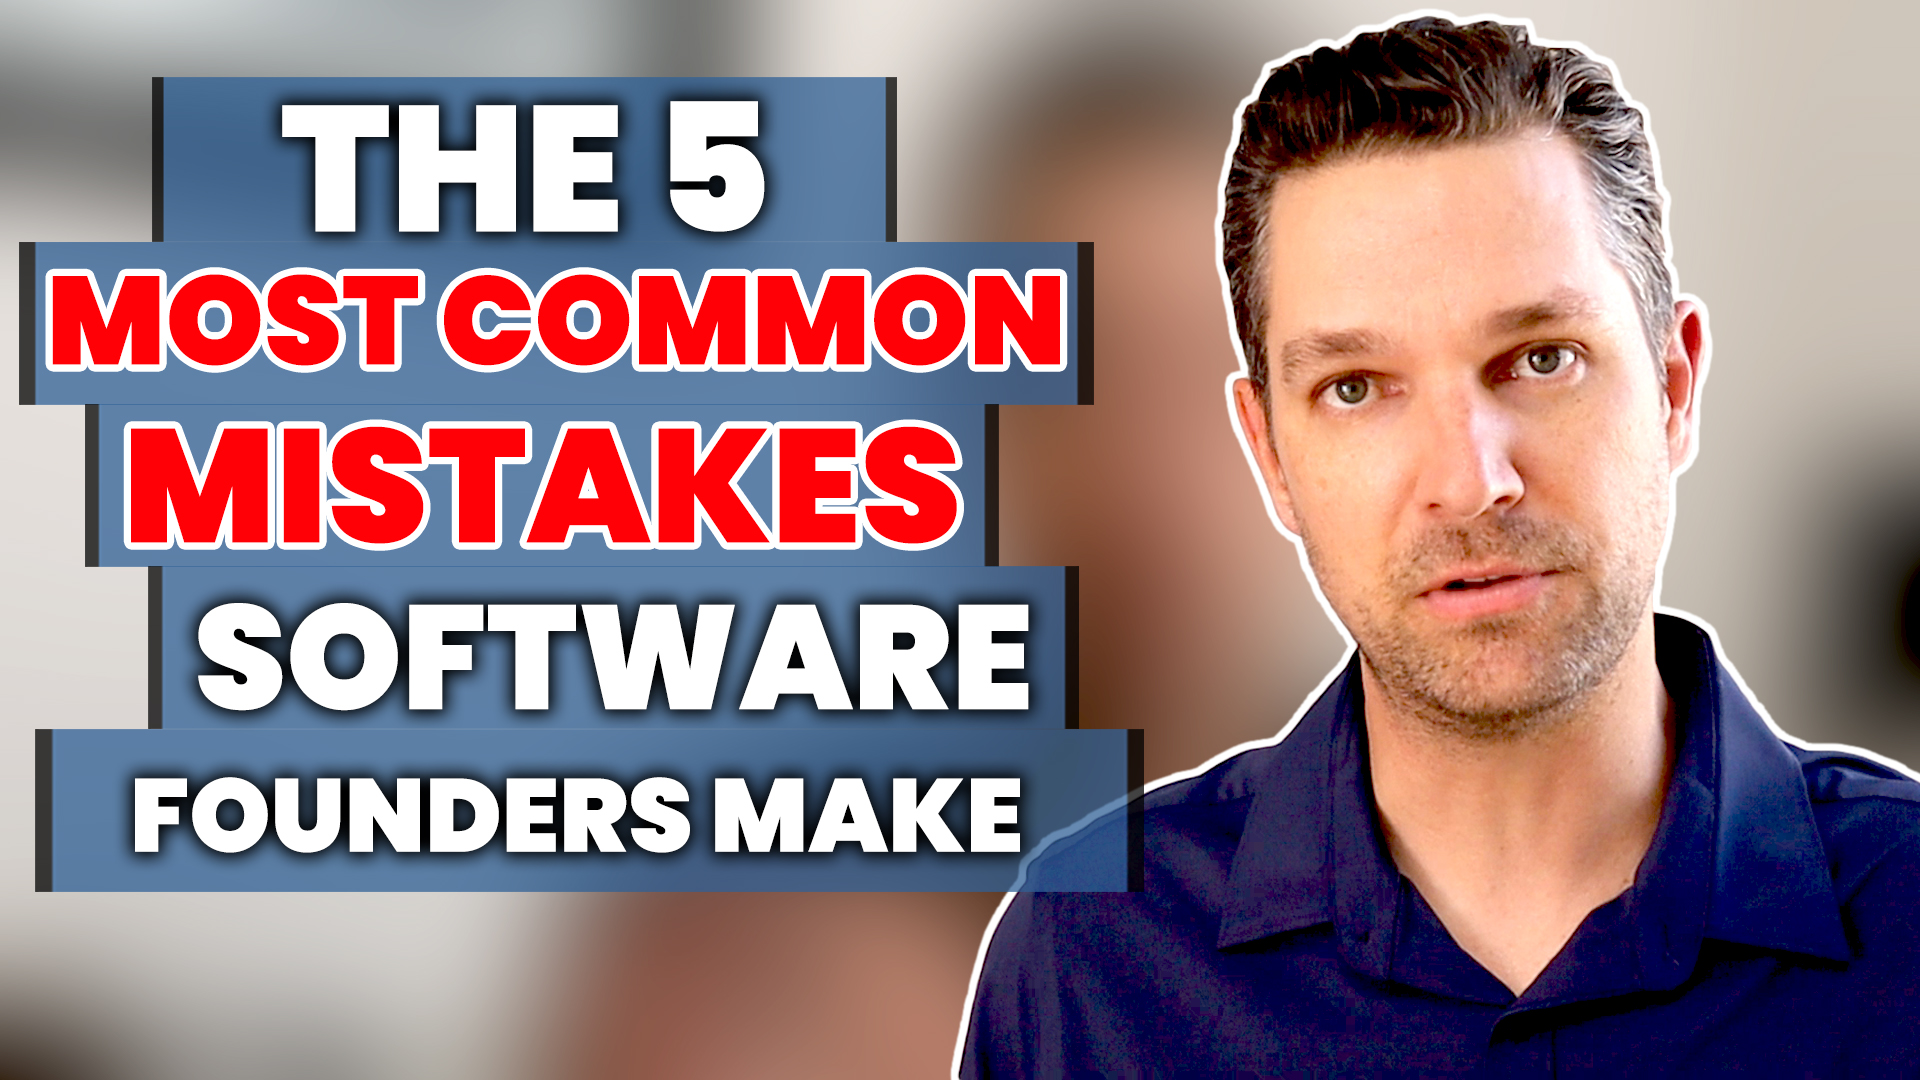 The 5 most common sales mistakes